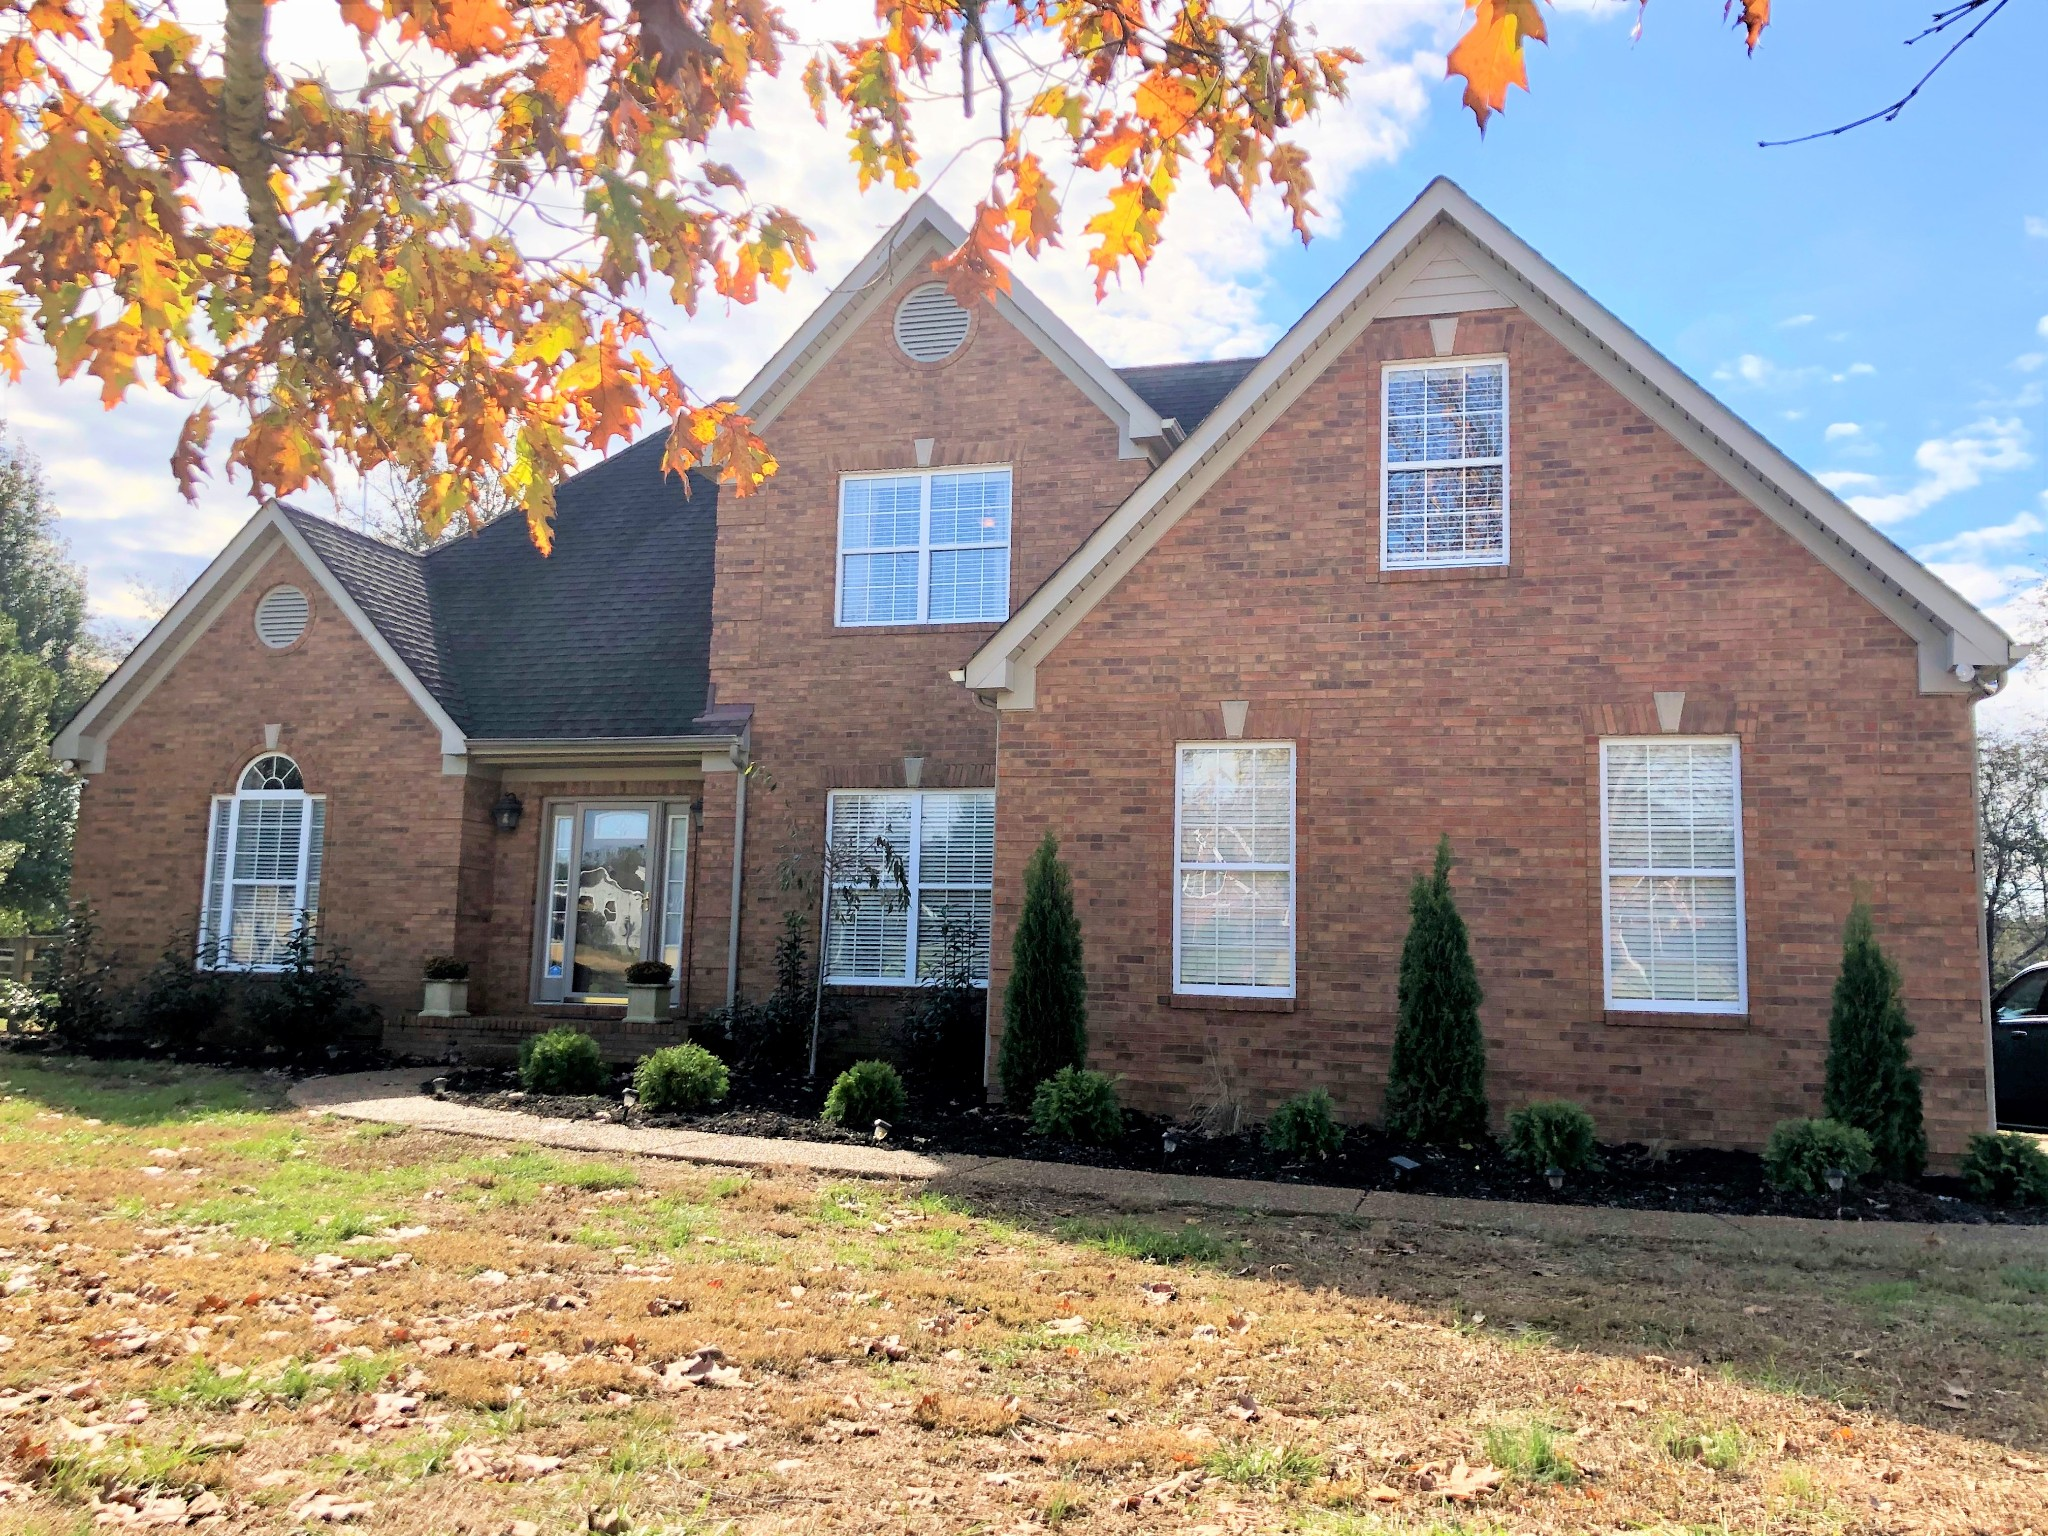 2105 Stafford Ct, Columbia, Tennessee